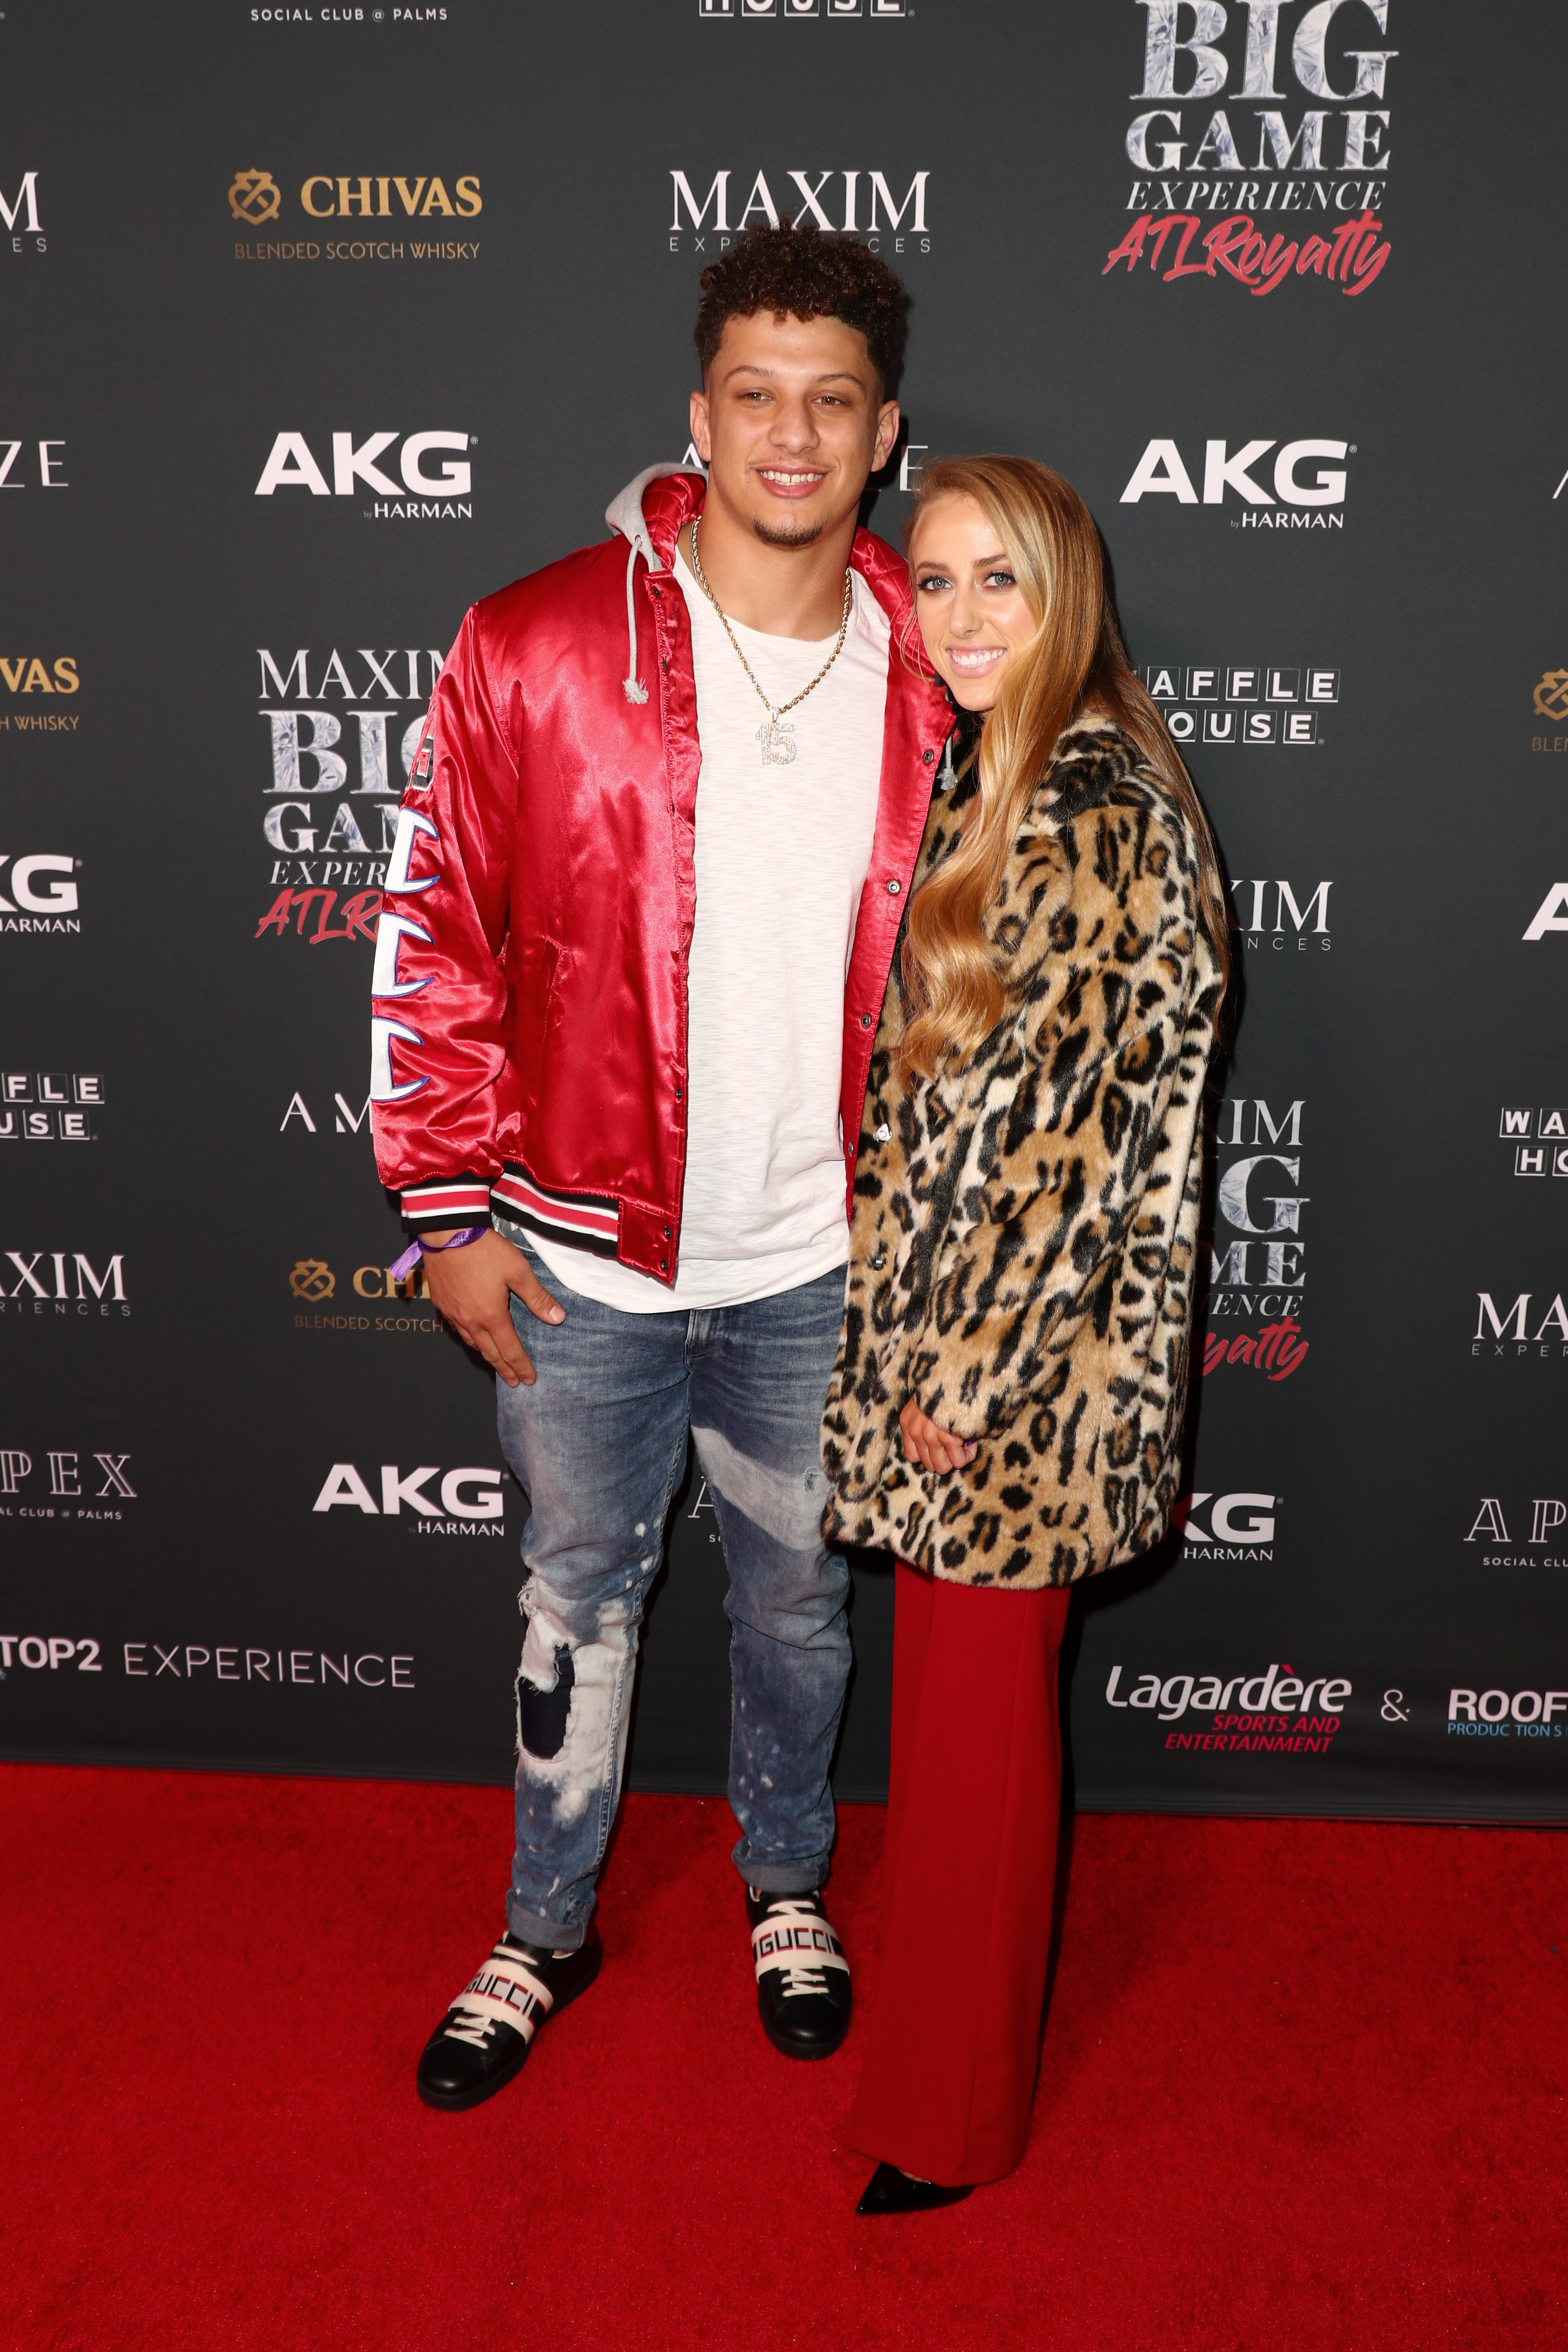 Patrick Mahomes and Brittany Matthews attends the Maxim Big Game Experience in Atlanta, George on February 2, 2019   Photo: Getty Images